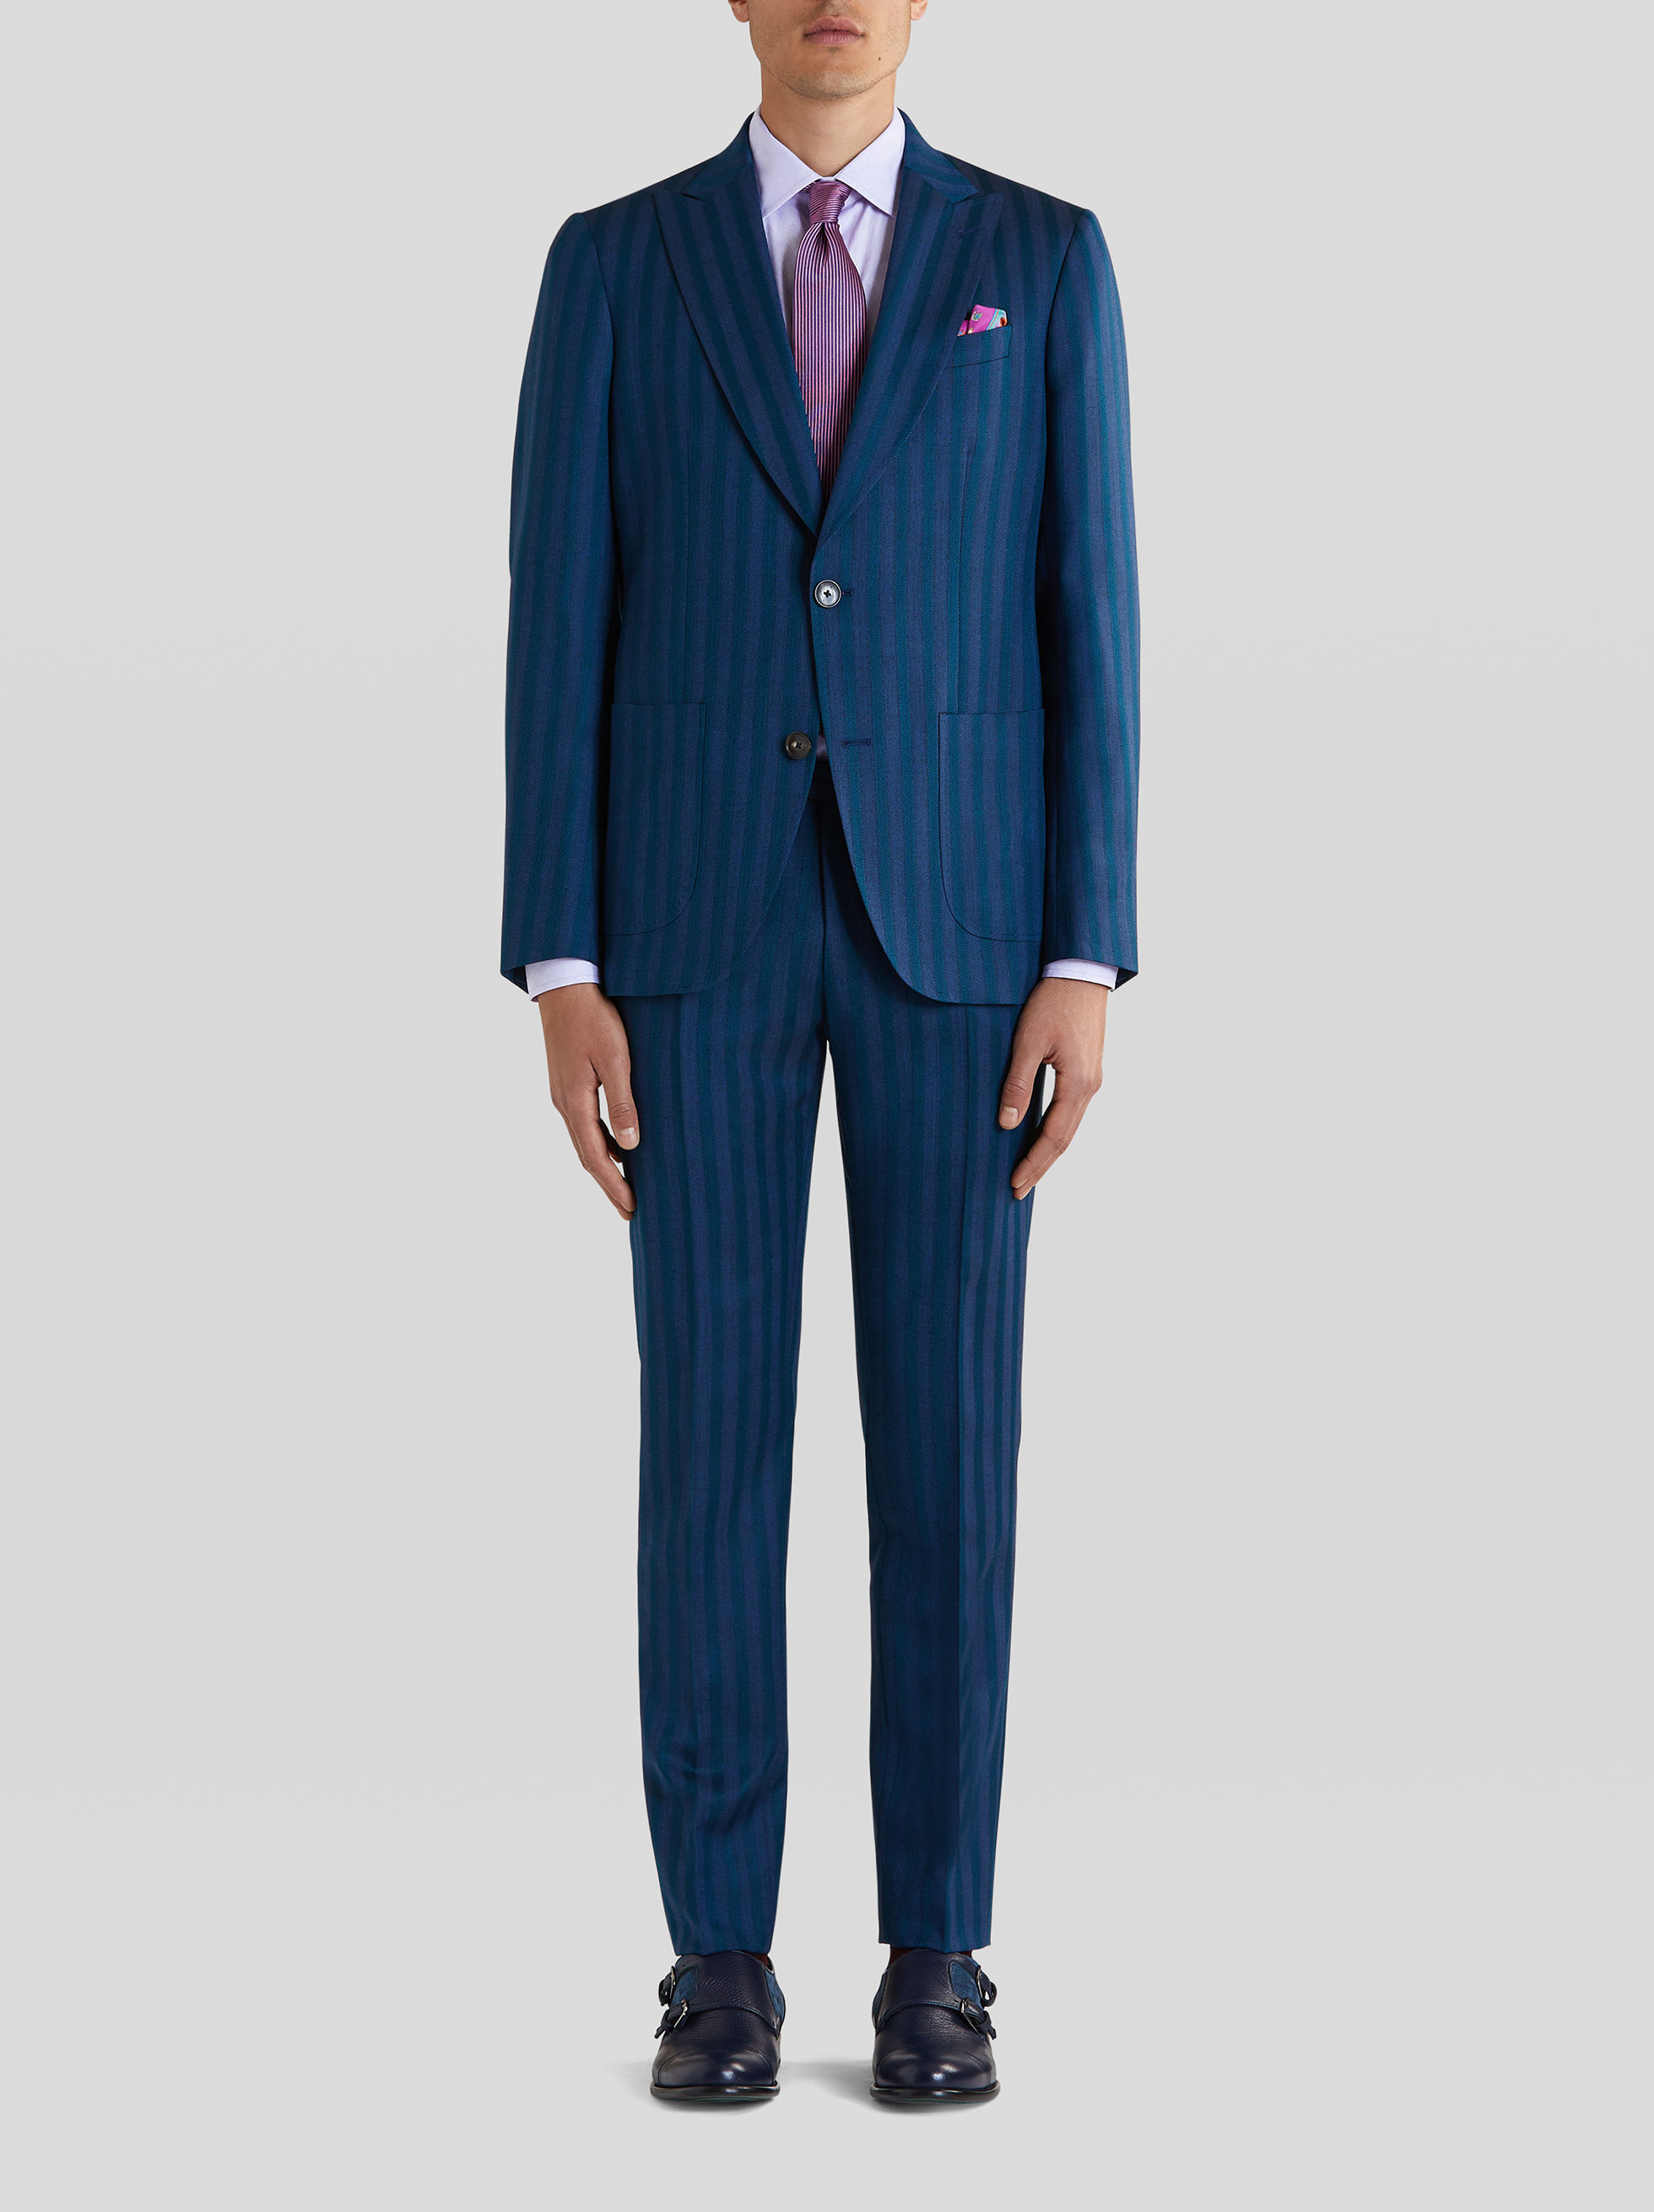 TAILORED STRIPED SUIT